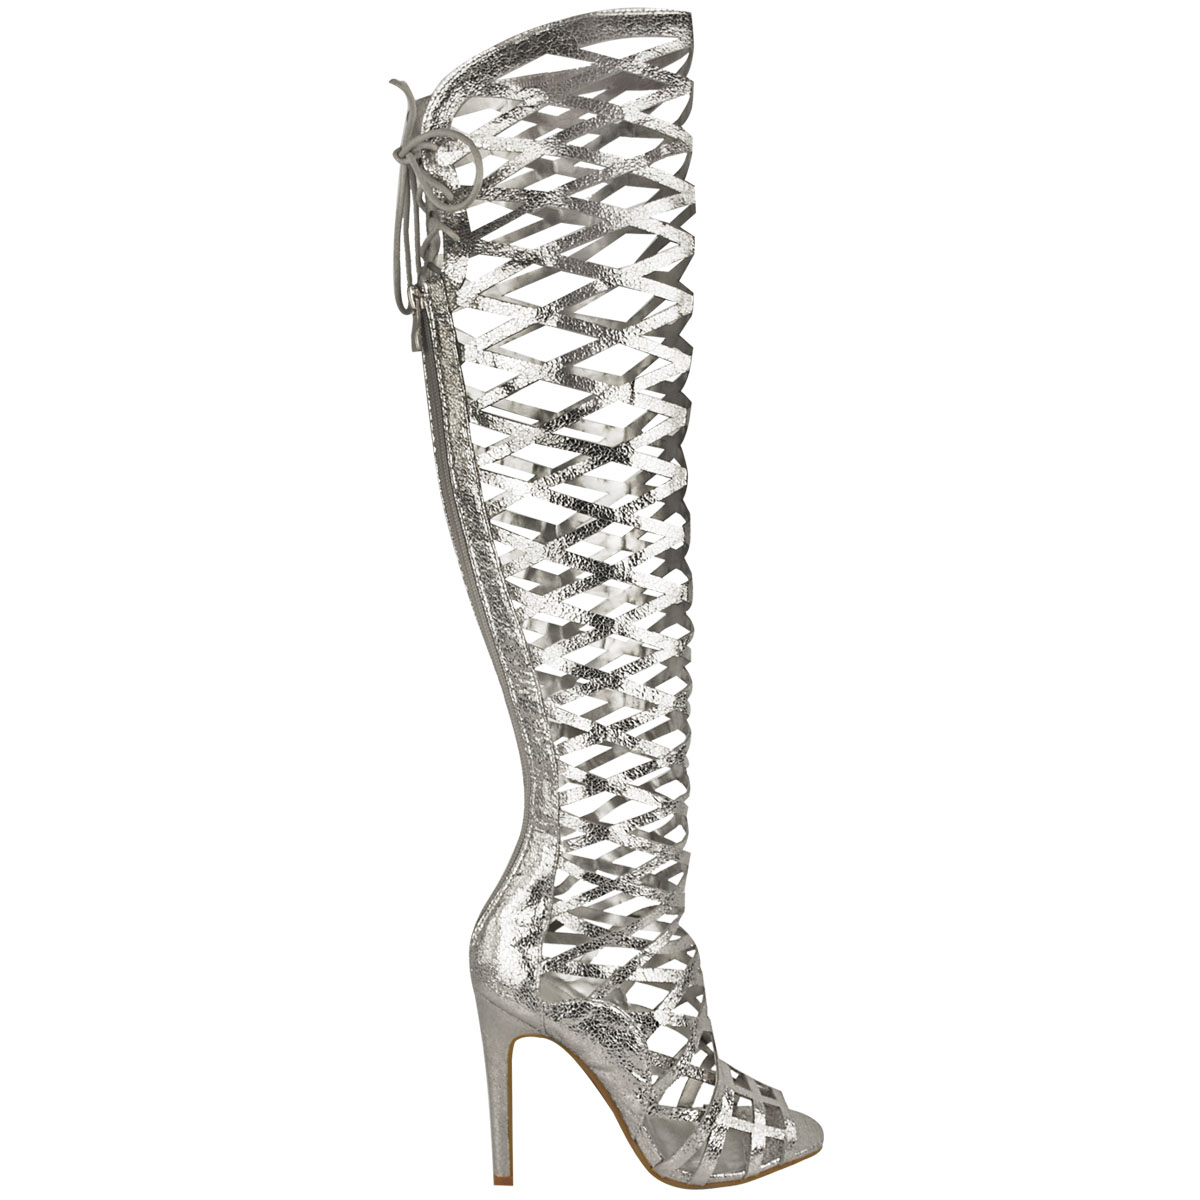 La S Womens Cut Out Lace Knee High Heel Boots Gladiator